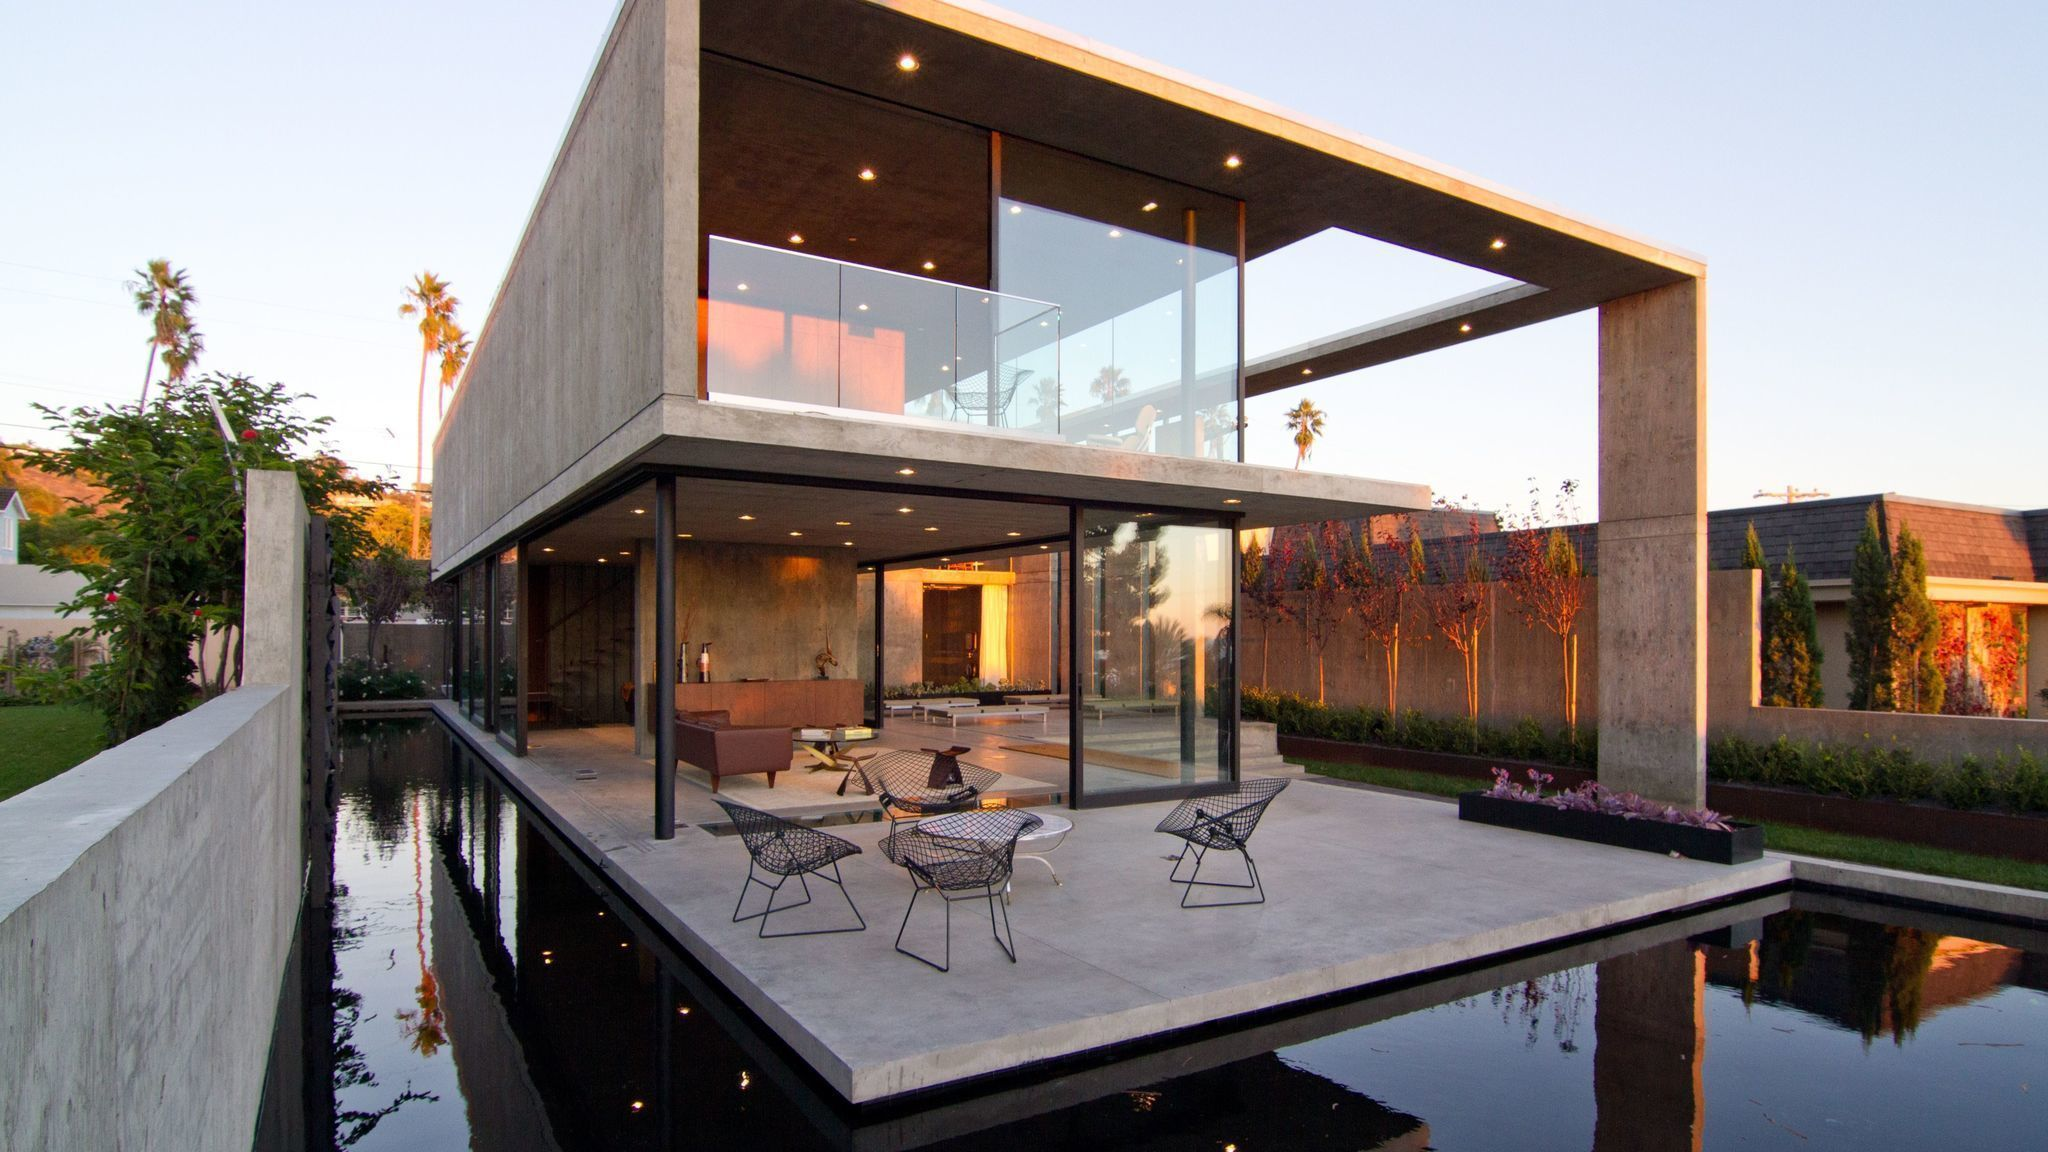 U0027Floatingu0027 Concrete House Wins Top Architecture Award   The San Diego  Union Tribune